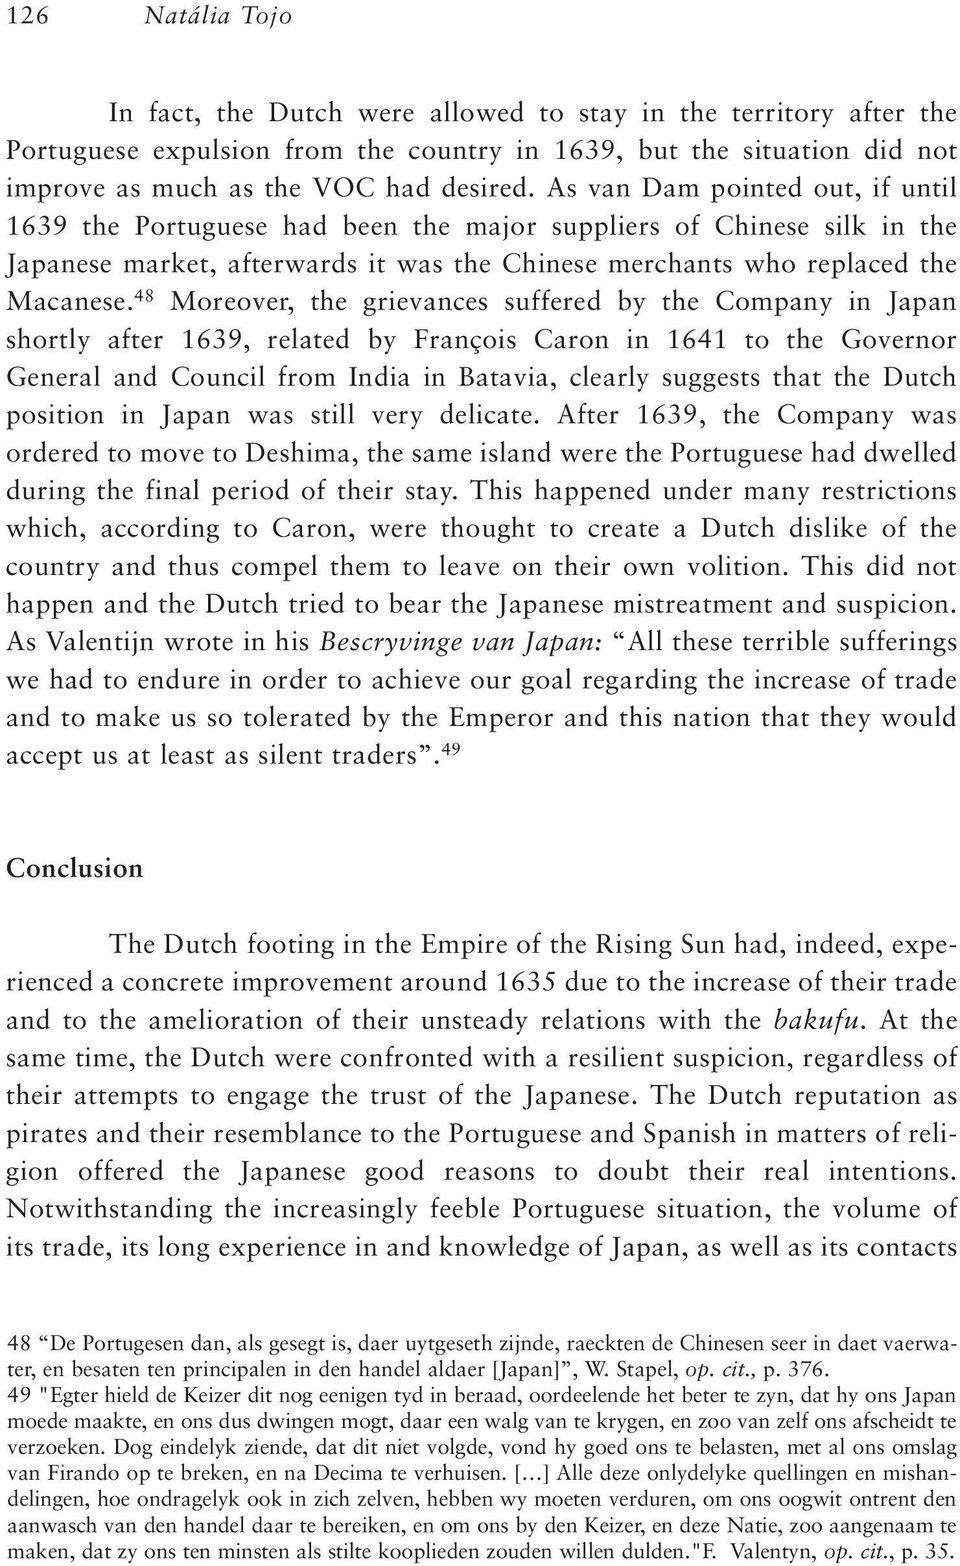 48 Moreover, the grievances suffered by the Company in Japan shortly after 1639, related by François Caron in 1641 to the Governor General and Council from India in Batavia, clearly suggests that the